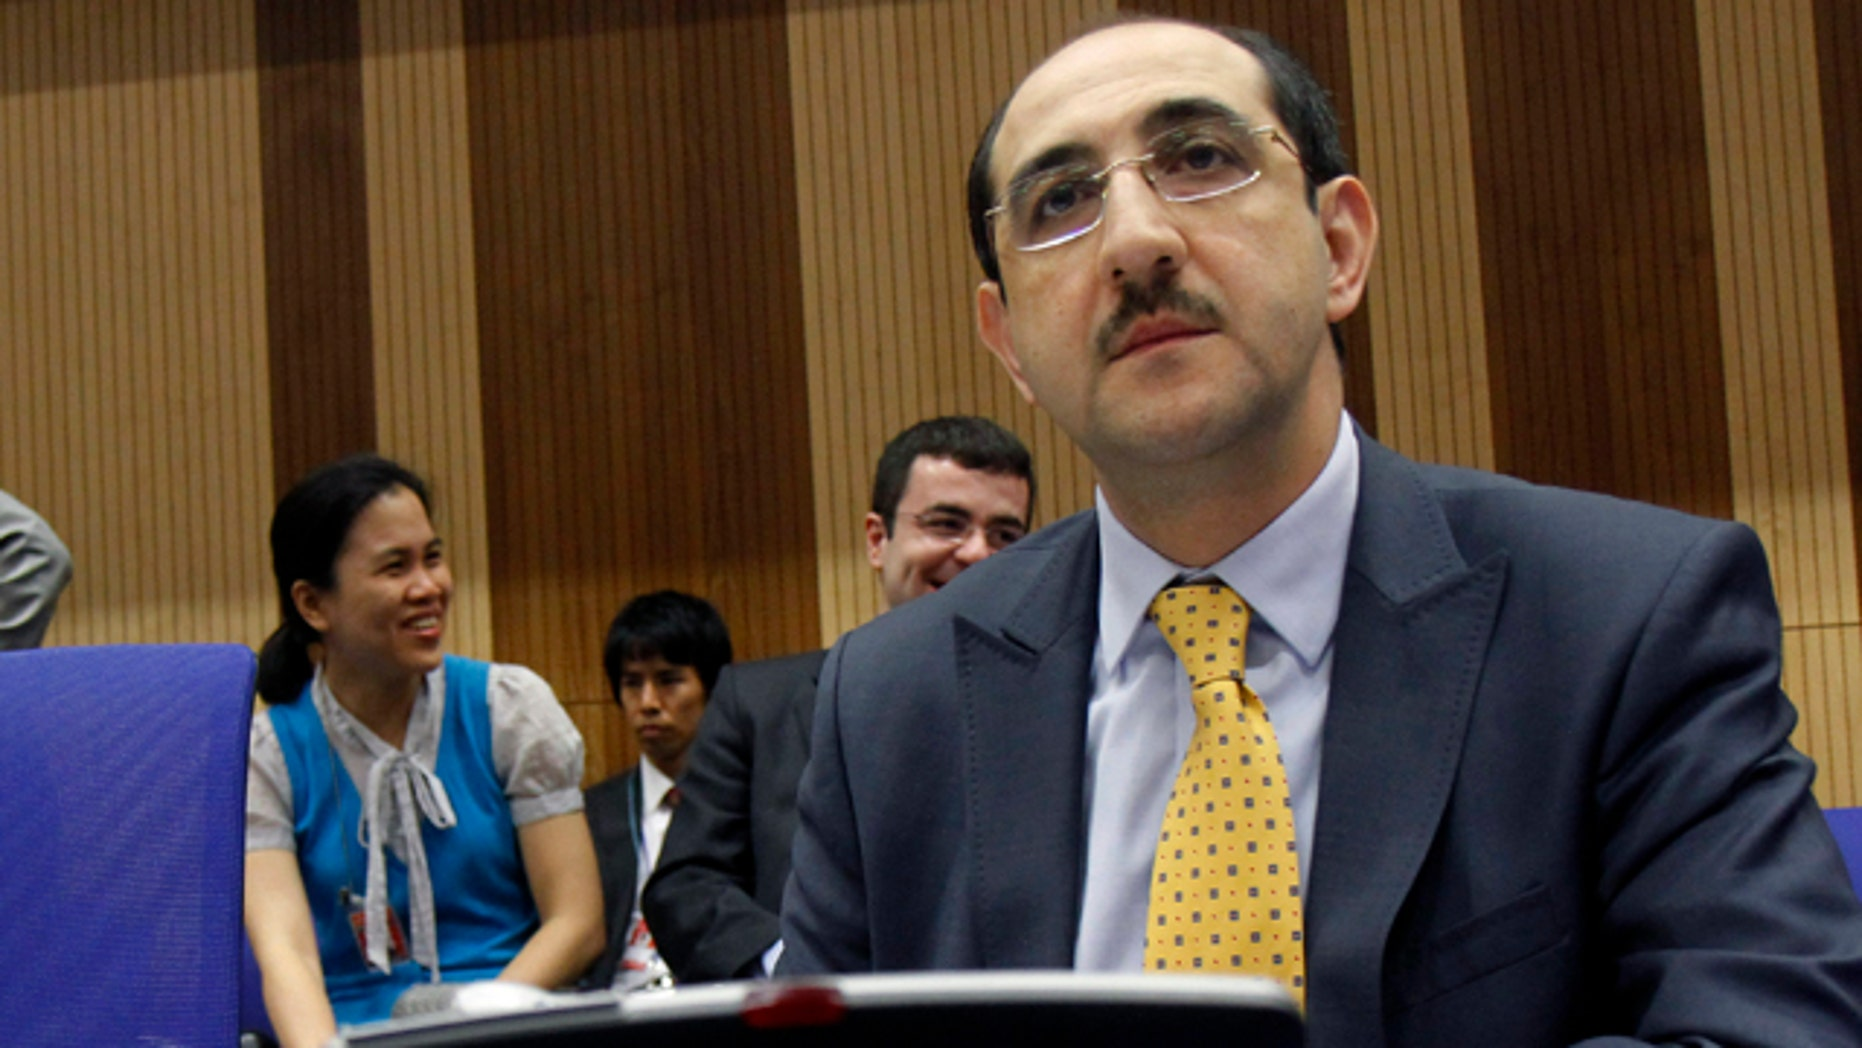 June 6: Syria's ambassador to Austria, Bassam al-Sabbagh, waits for the start of  the board of governors meeting of the International Atomic Energy Agency, IAEA, at the International Center, in Vienna, Austria.